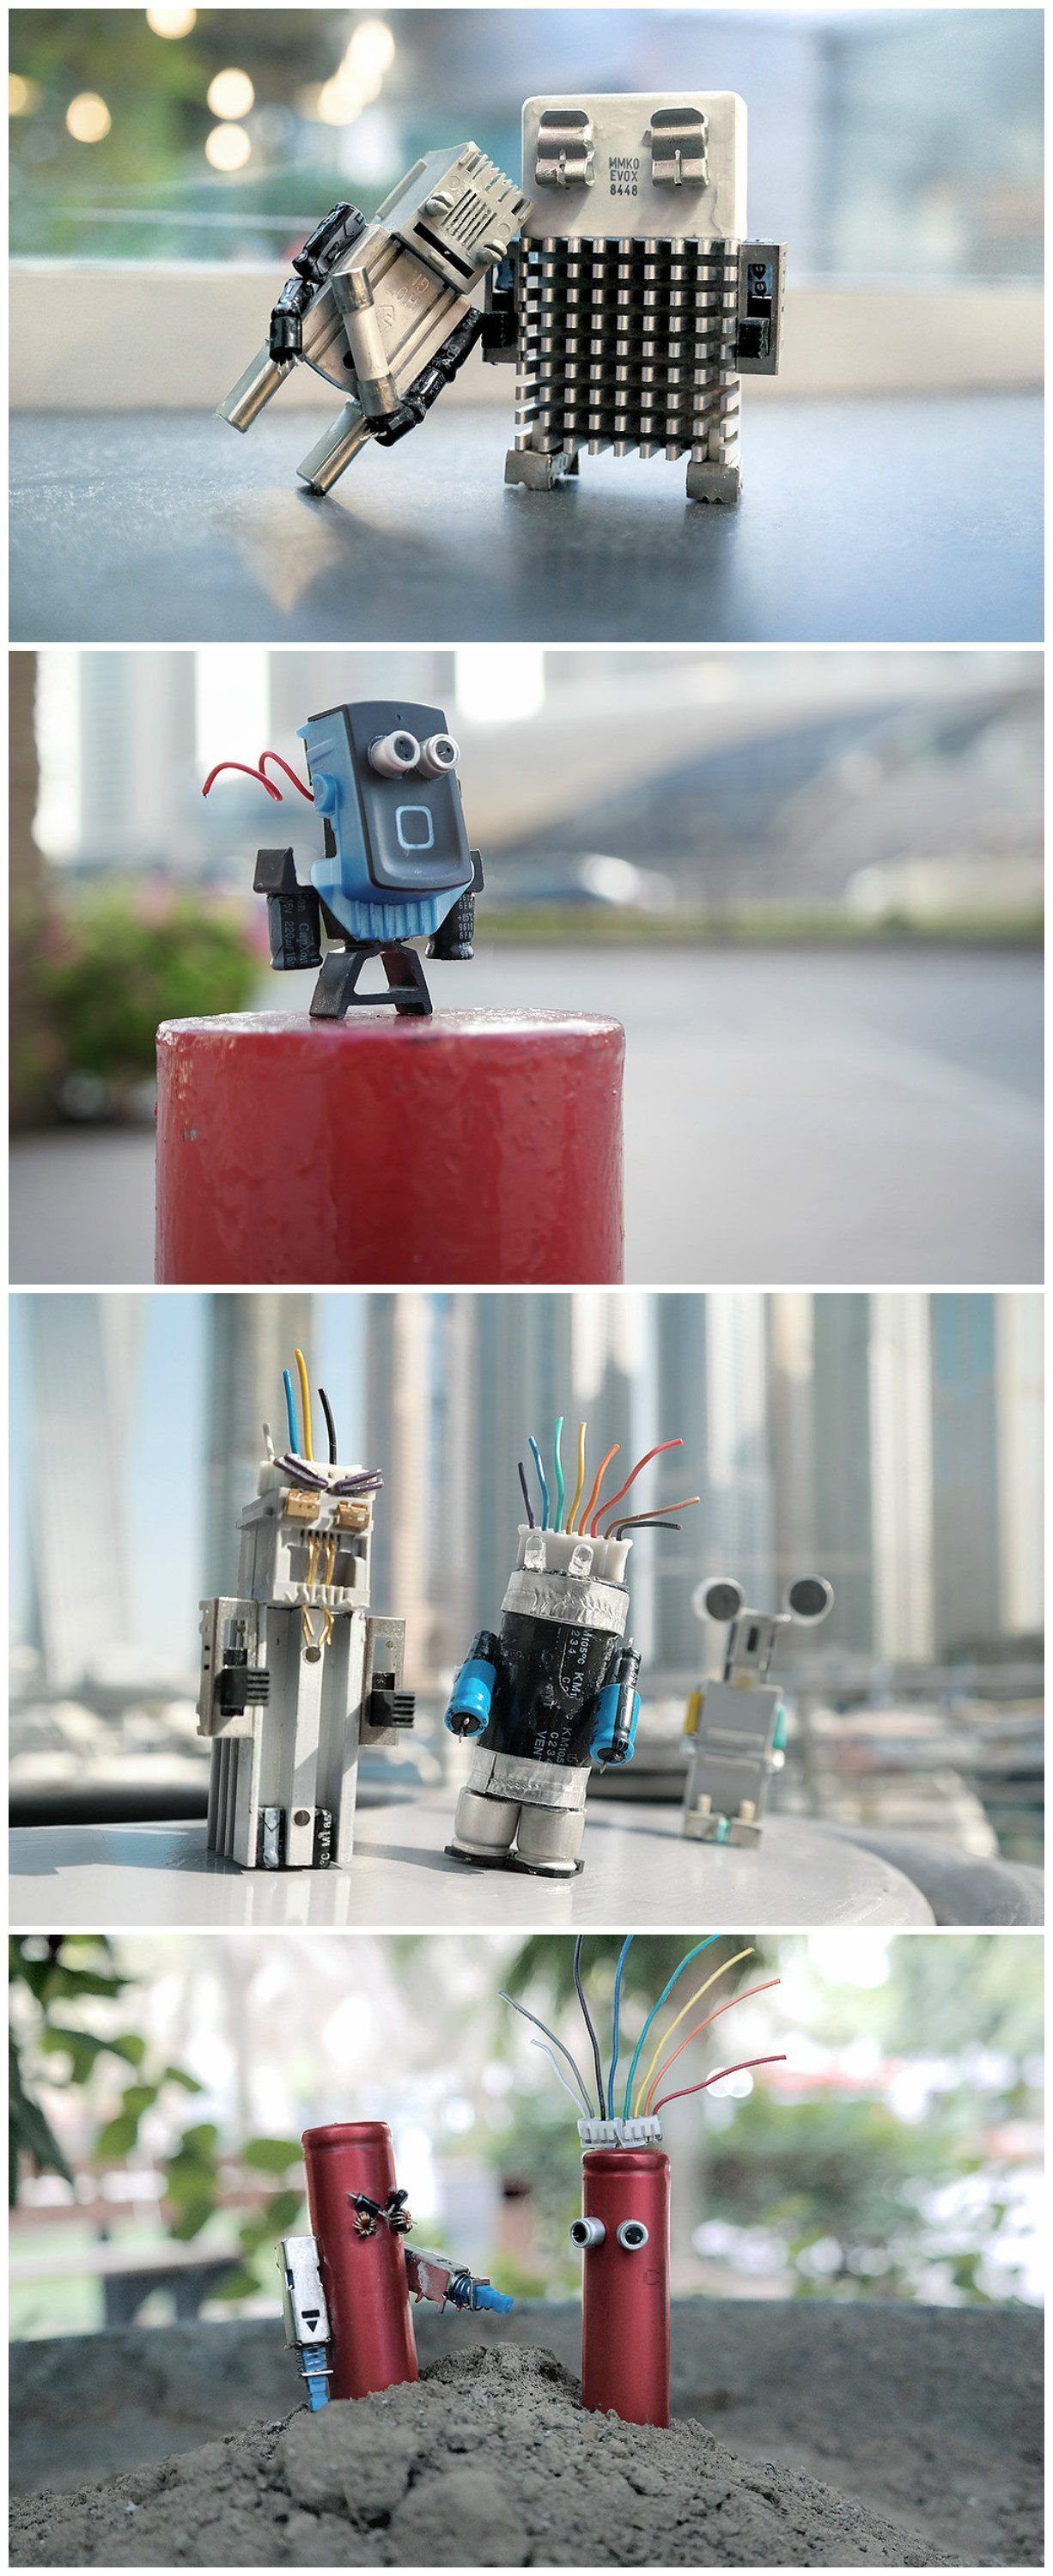 The concept here is to keep electronic waste out of the environment by making these up-cycled characters using static and rigid shapes of digital components to give a second life to objects that can be transformed into living characters to tell a story even in one shot.